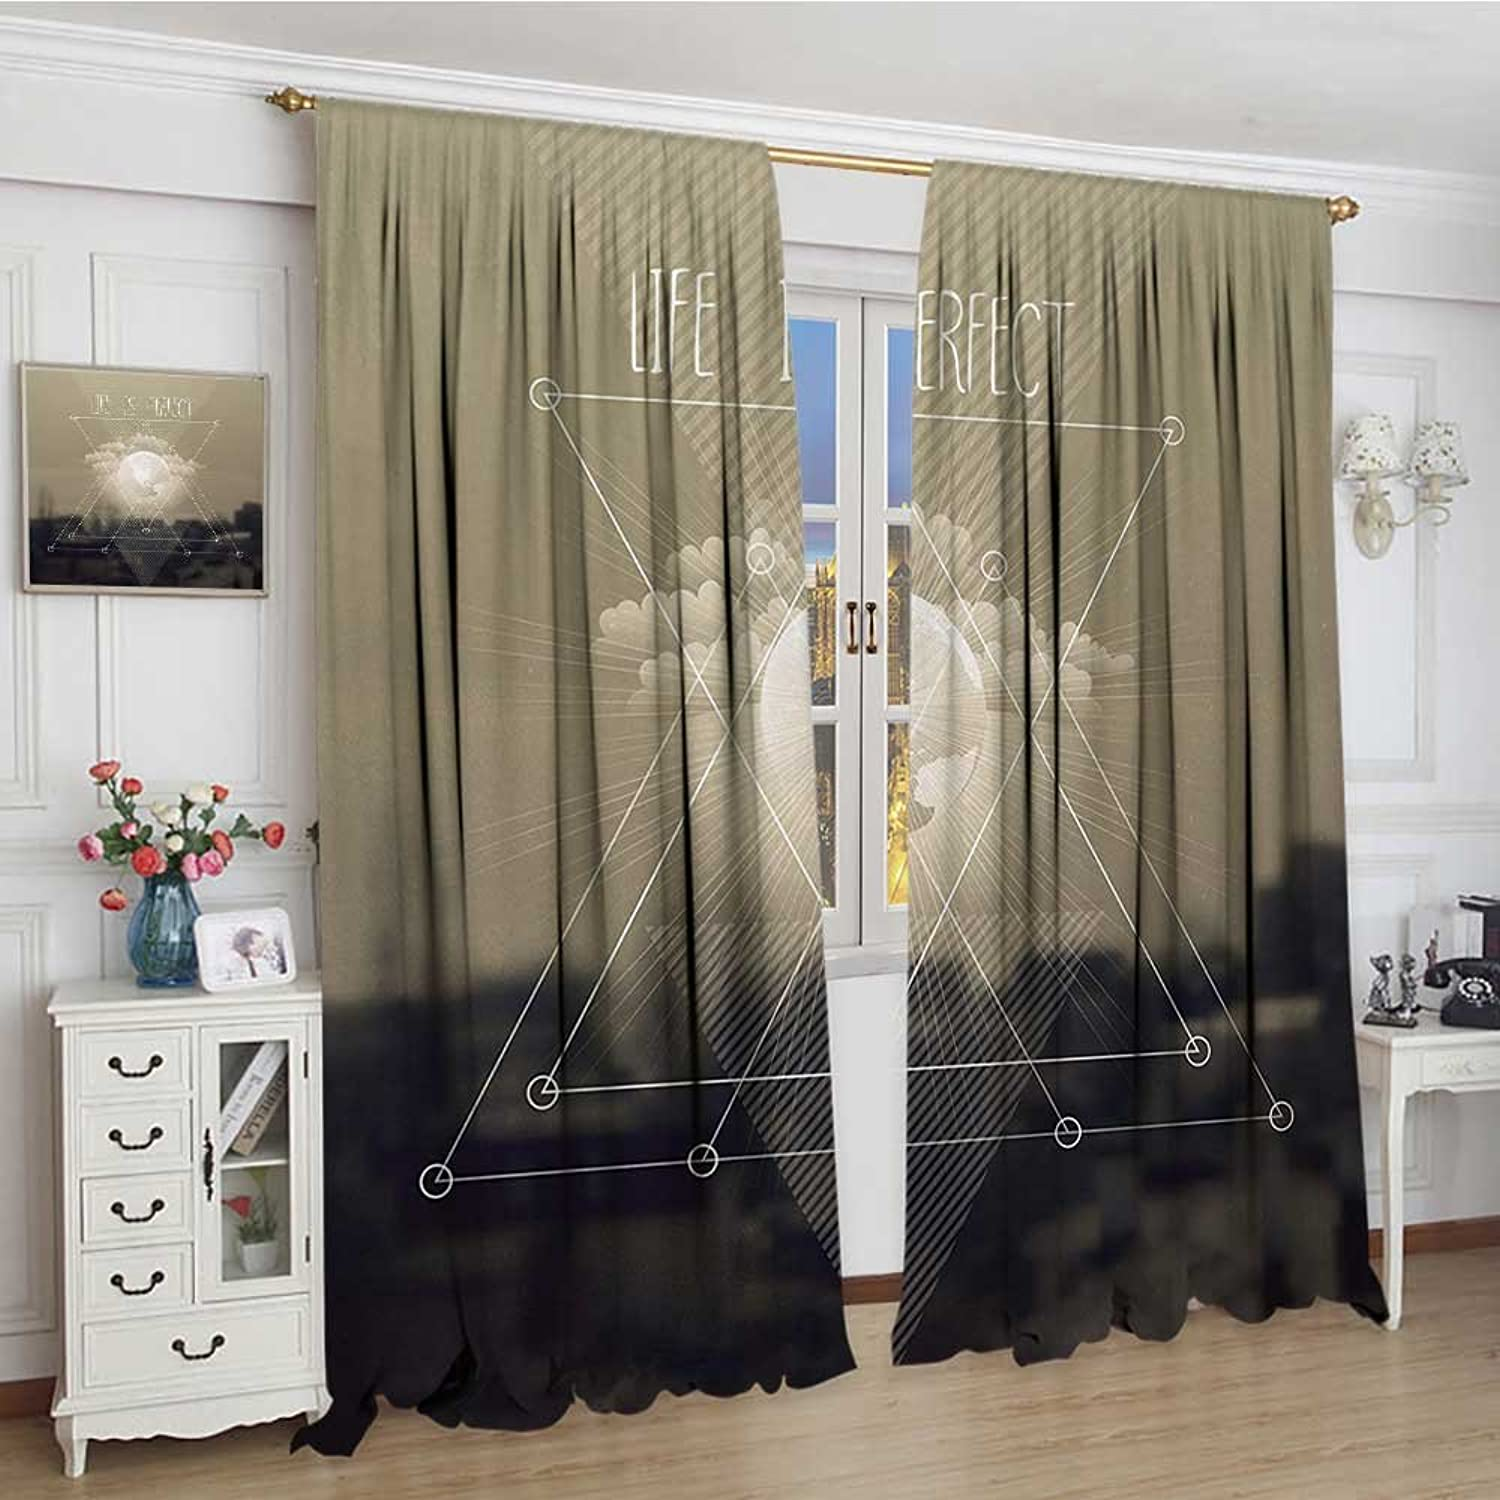 Smallbeefly Indie Waterproof Curtain Widened Life is Perfect Inspirational Geometric Triangles Cityscape Clouds Earth Lengthened Decor Curtains by 120 x108  Tan Dark Taupe White